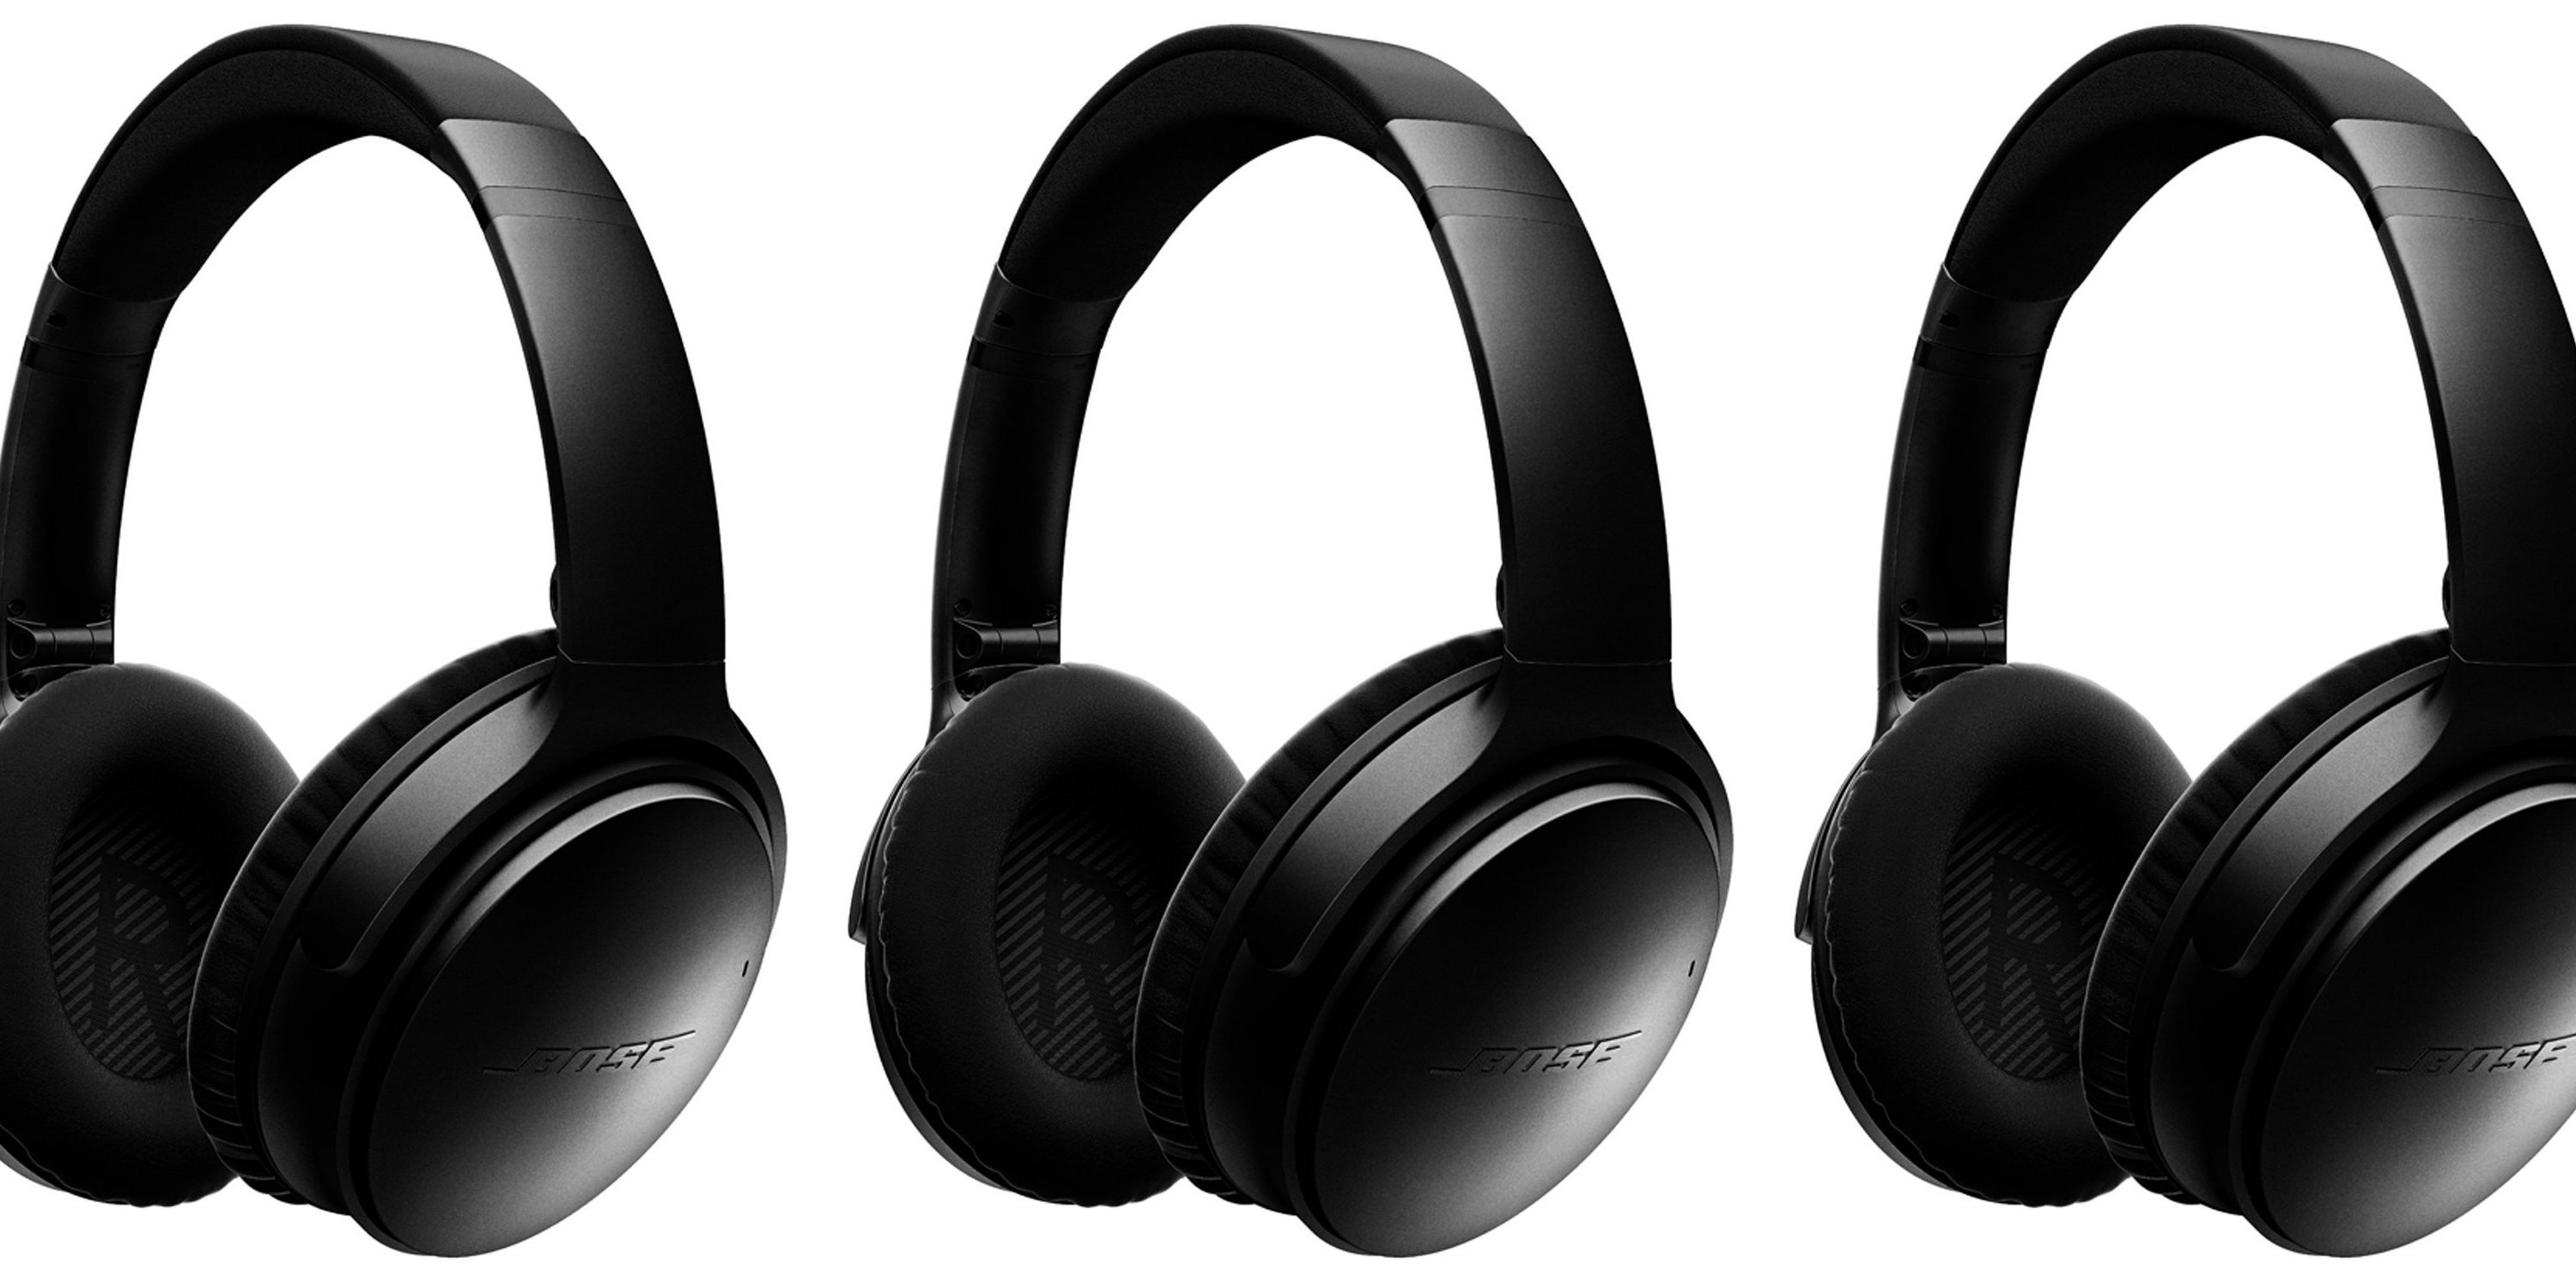 Bose QuietComfort 25/35 headphones now available from $144.50 for today only